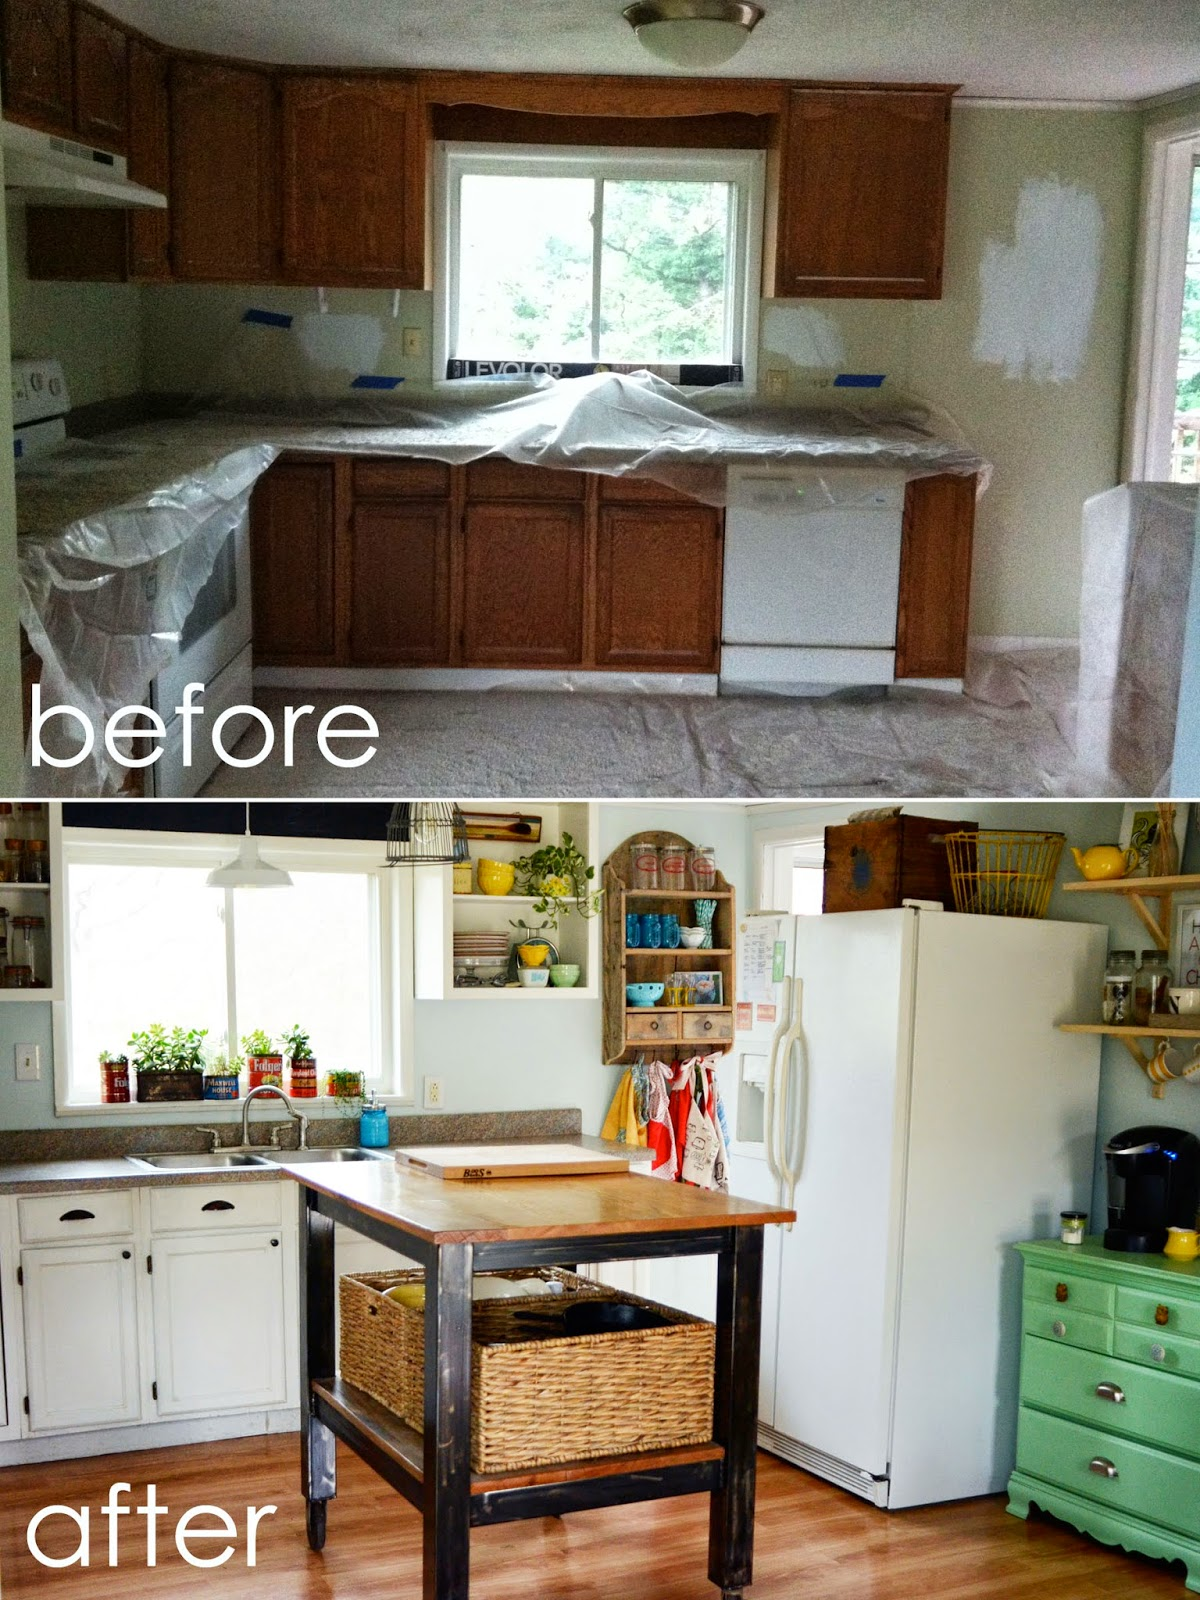 Natalie creates our kitchen remodel before after for Kitchen remodel before after